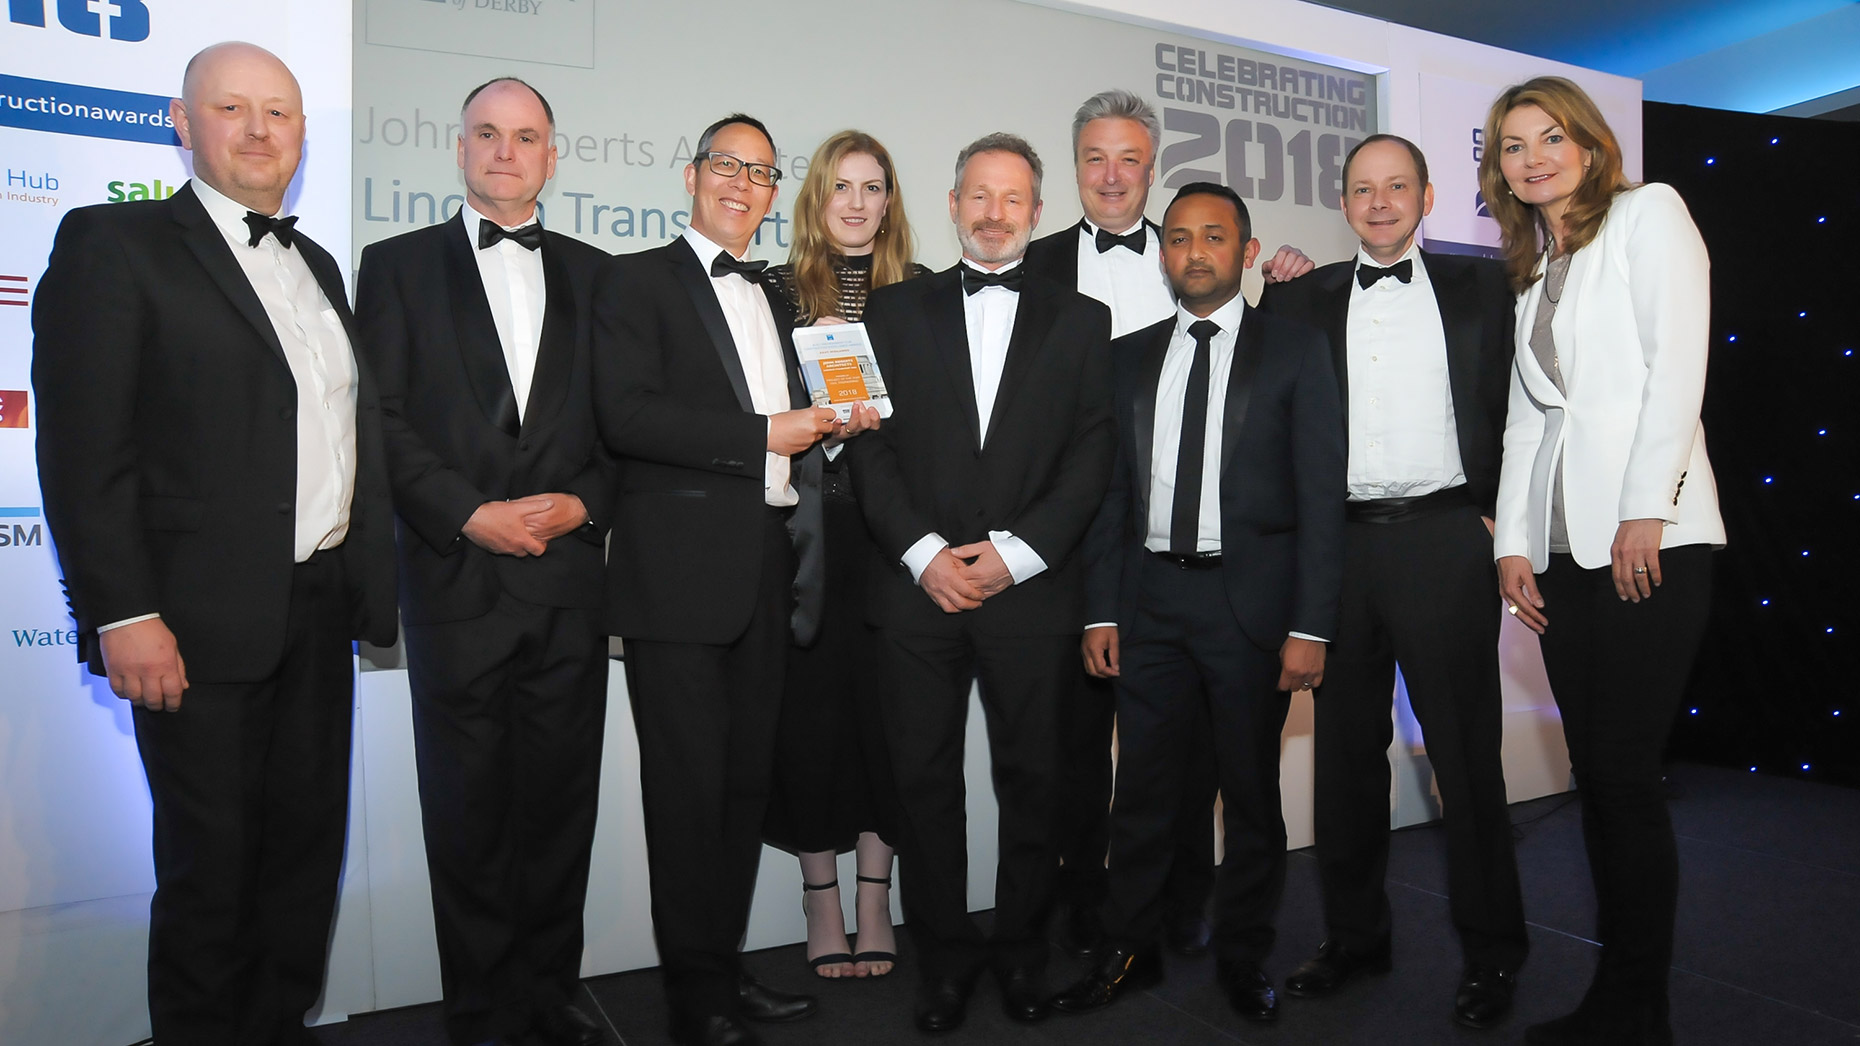 Lincoln Architects Win Civil Engineering Project Of The Year 2018